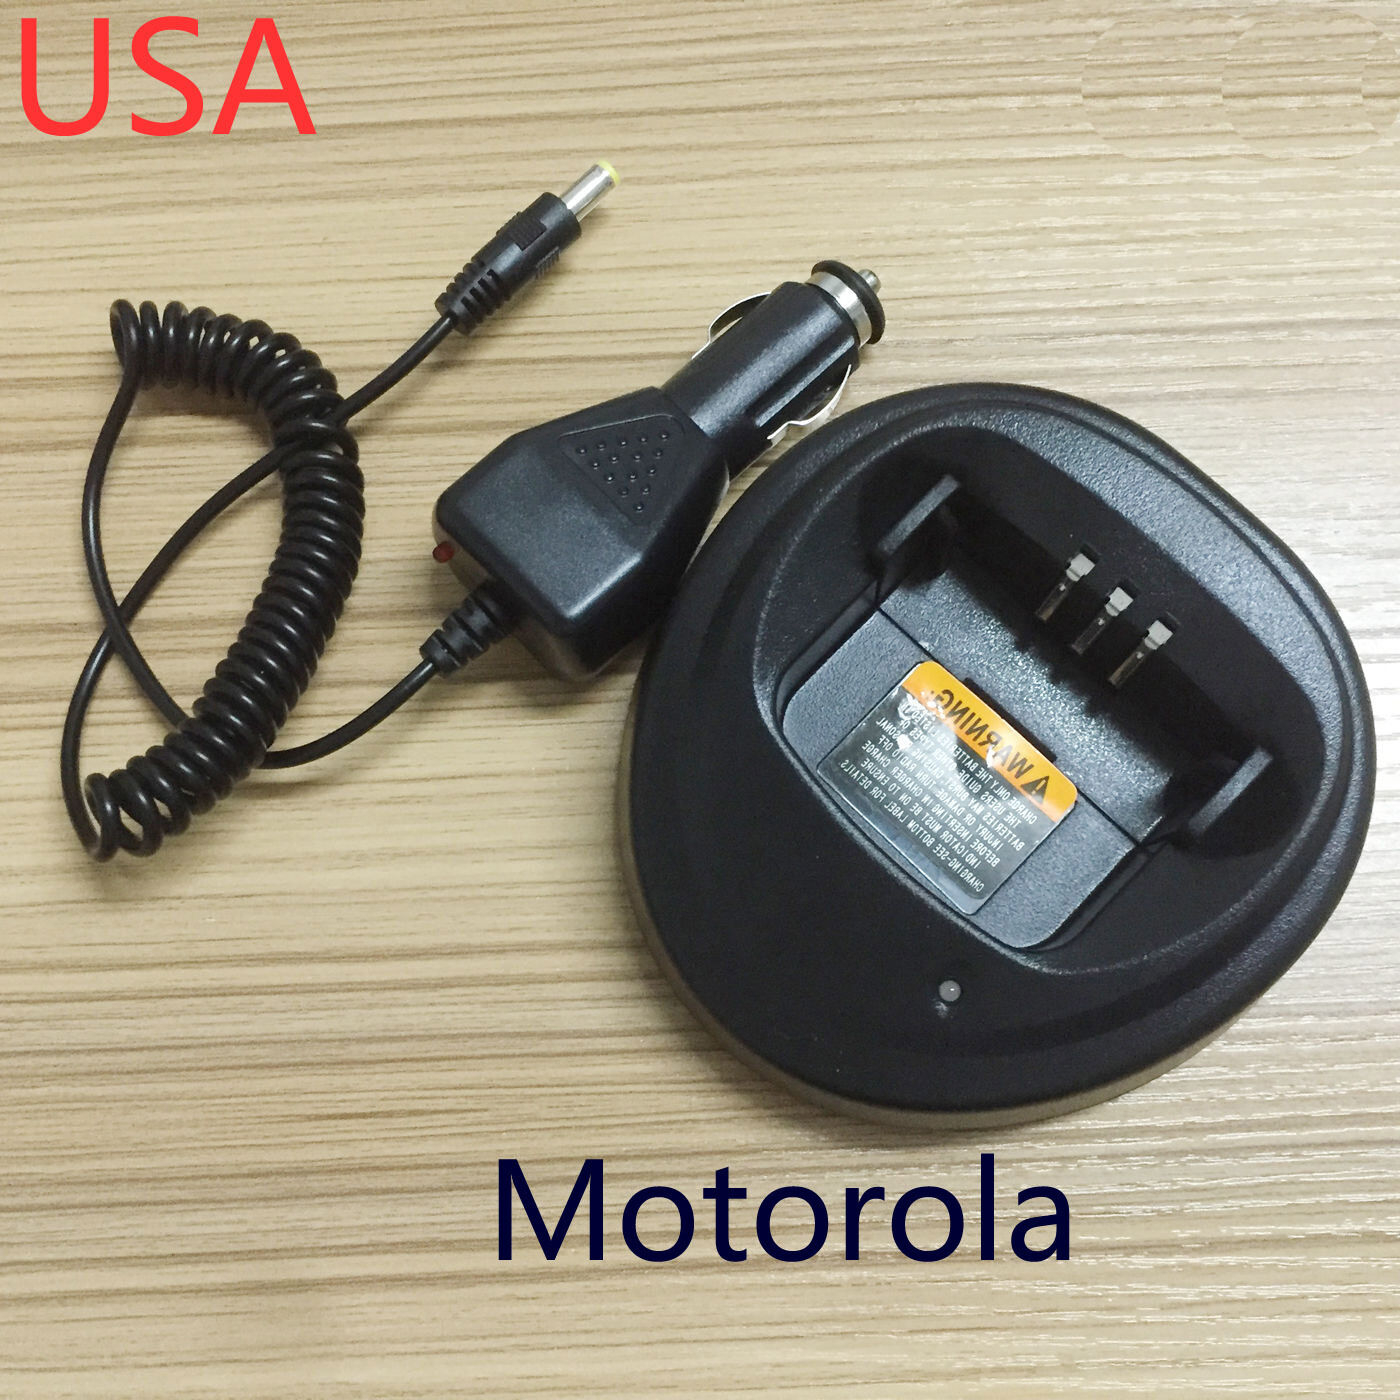 12V 24V Car DC Charger Cable For Motorola Radio CP180 CP200 GP3688 PR400 EP450